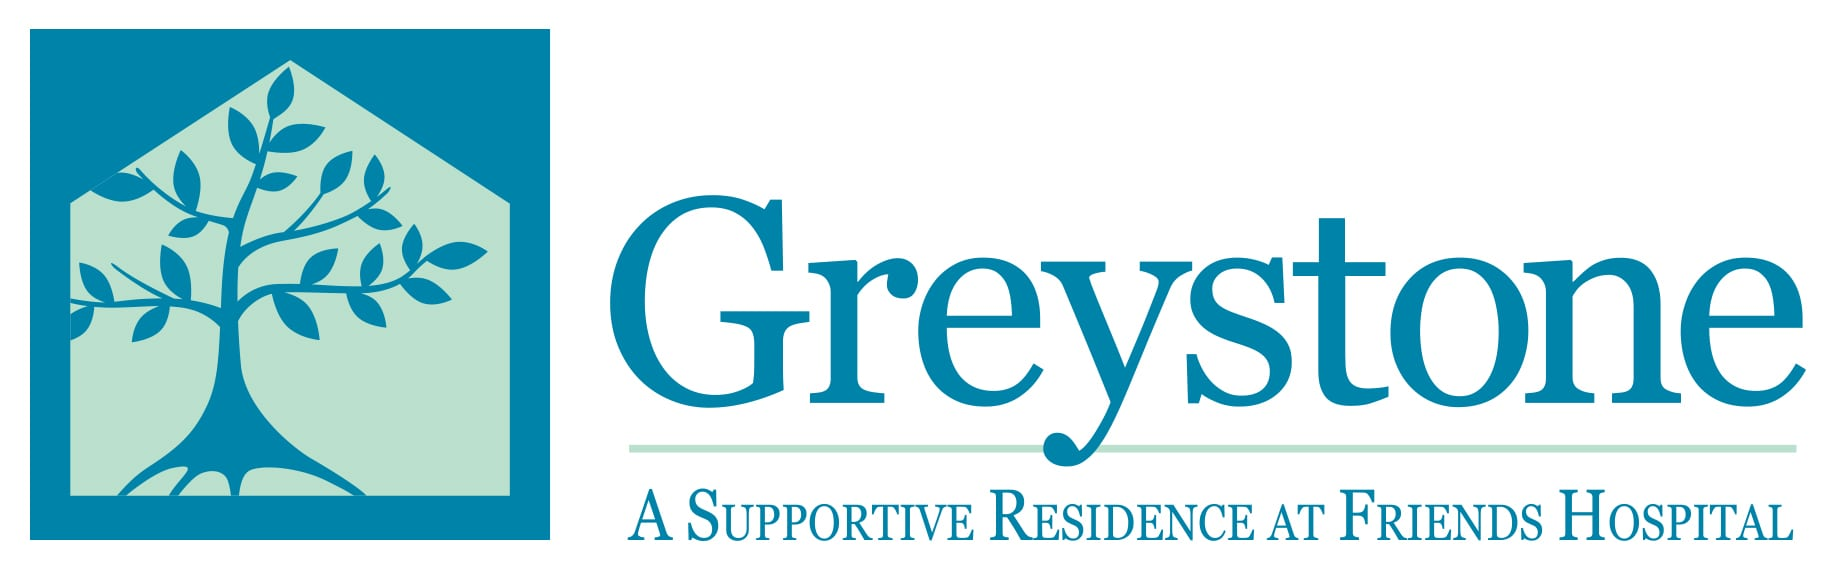 Logo: Greystone at Friends Hopistal